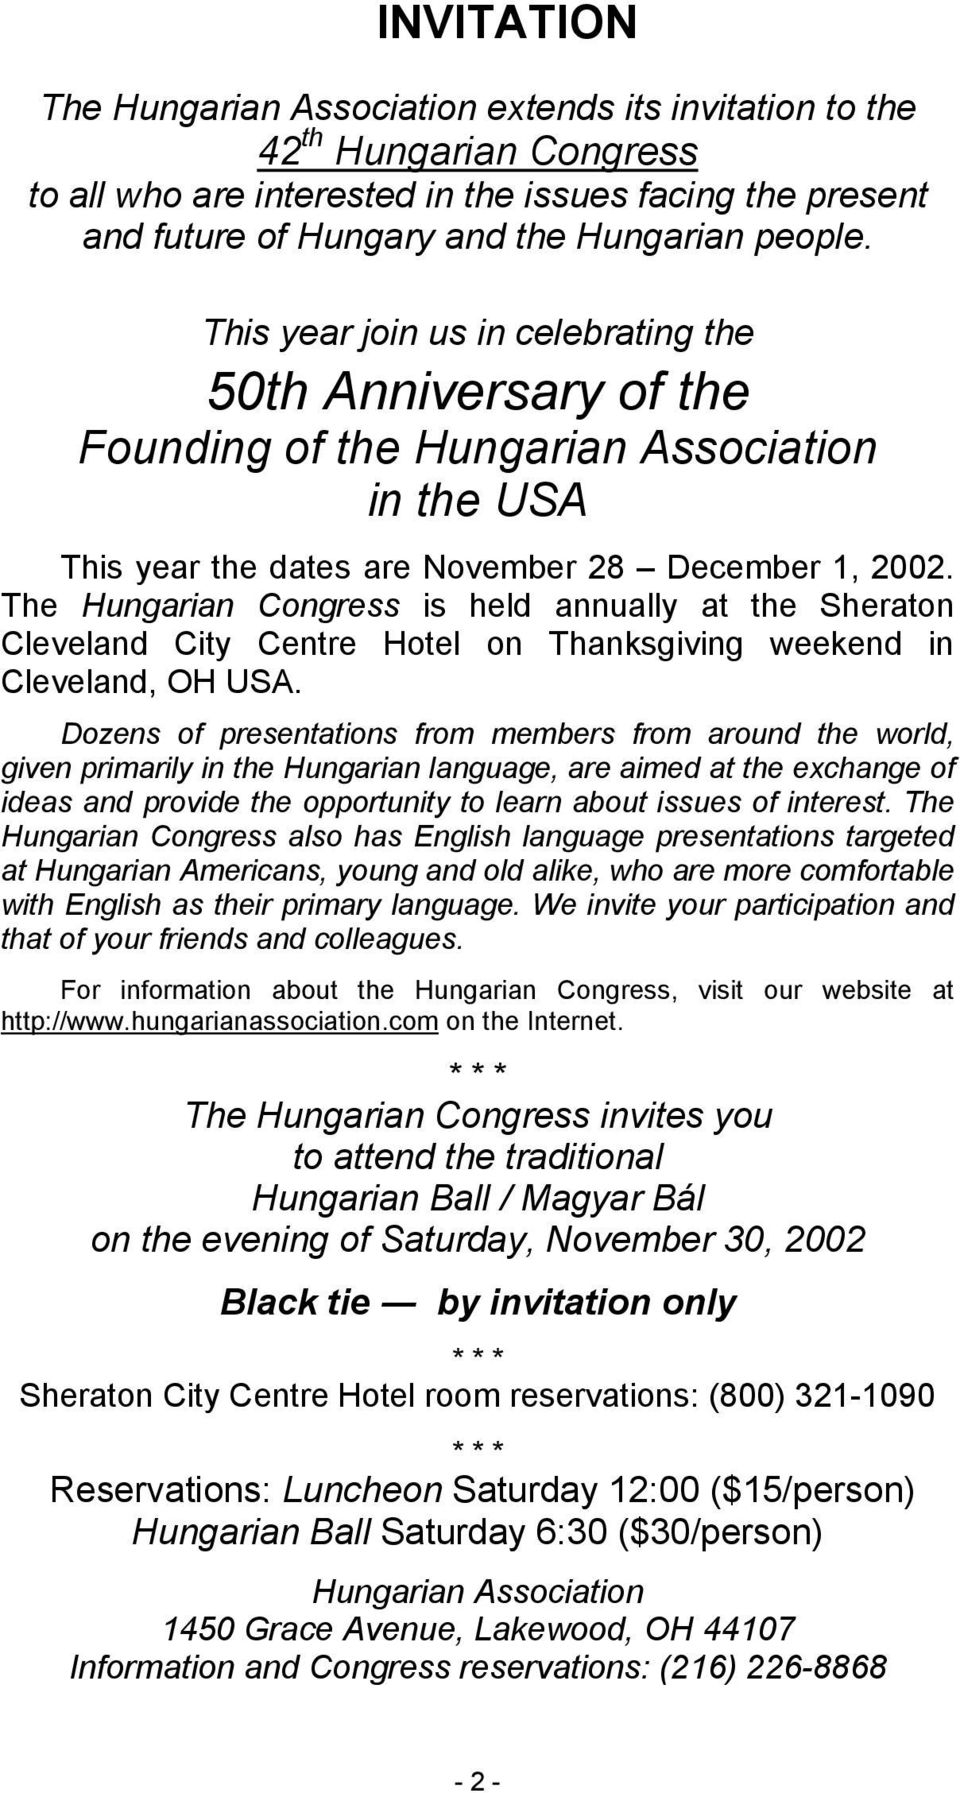 The Hungarian Congress is held annually at the Sheraton Cleveland City Centre Hotel on Thanksgiving weekend in Cleveland, OH USA.